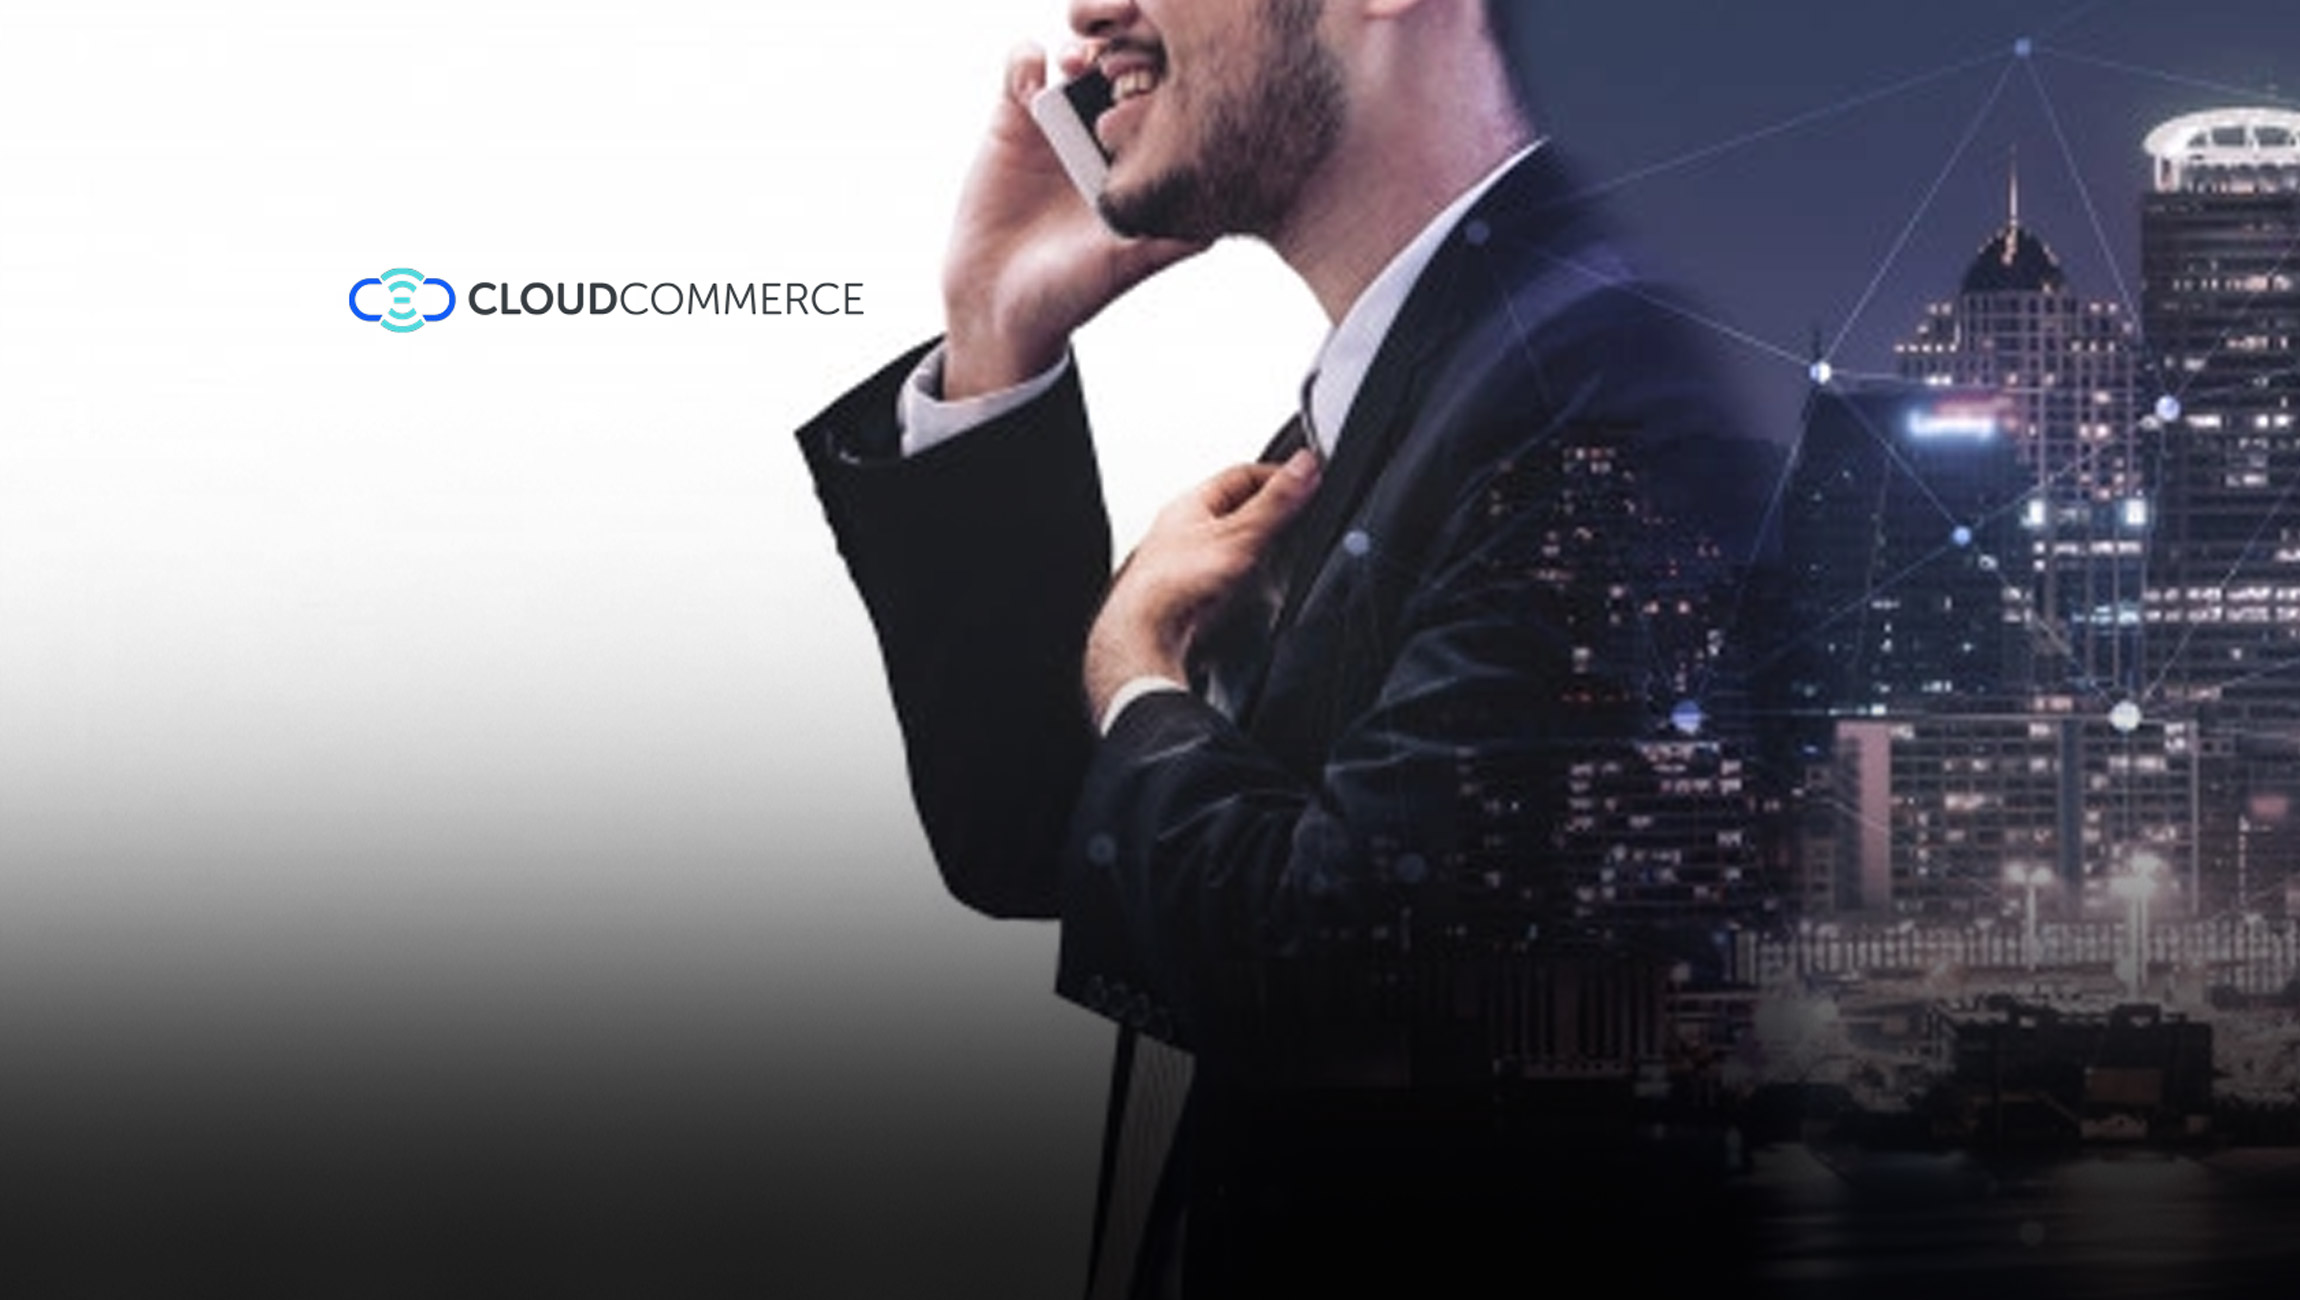 CloudCommerce to Launch Artificial Intelligence (AI) Advertising Venture